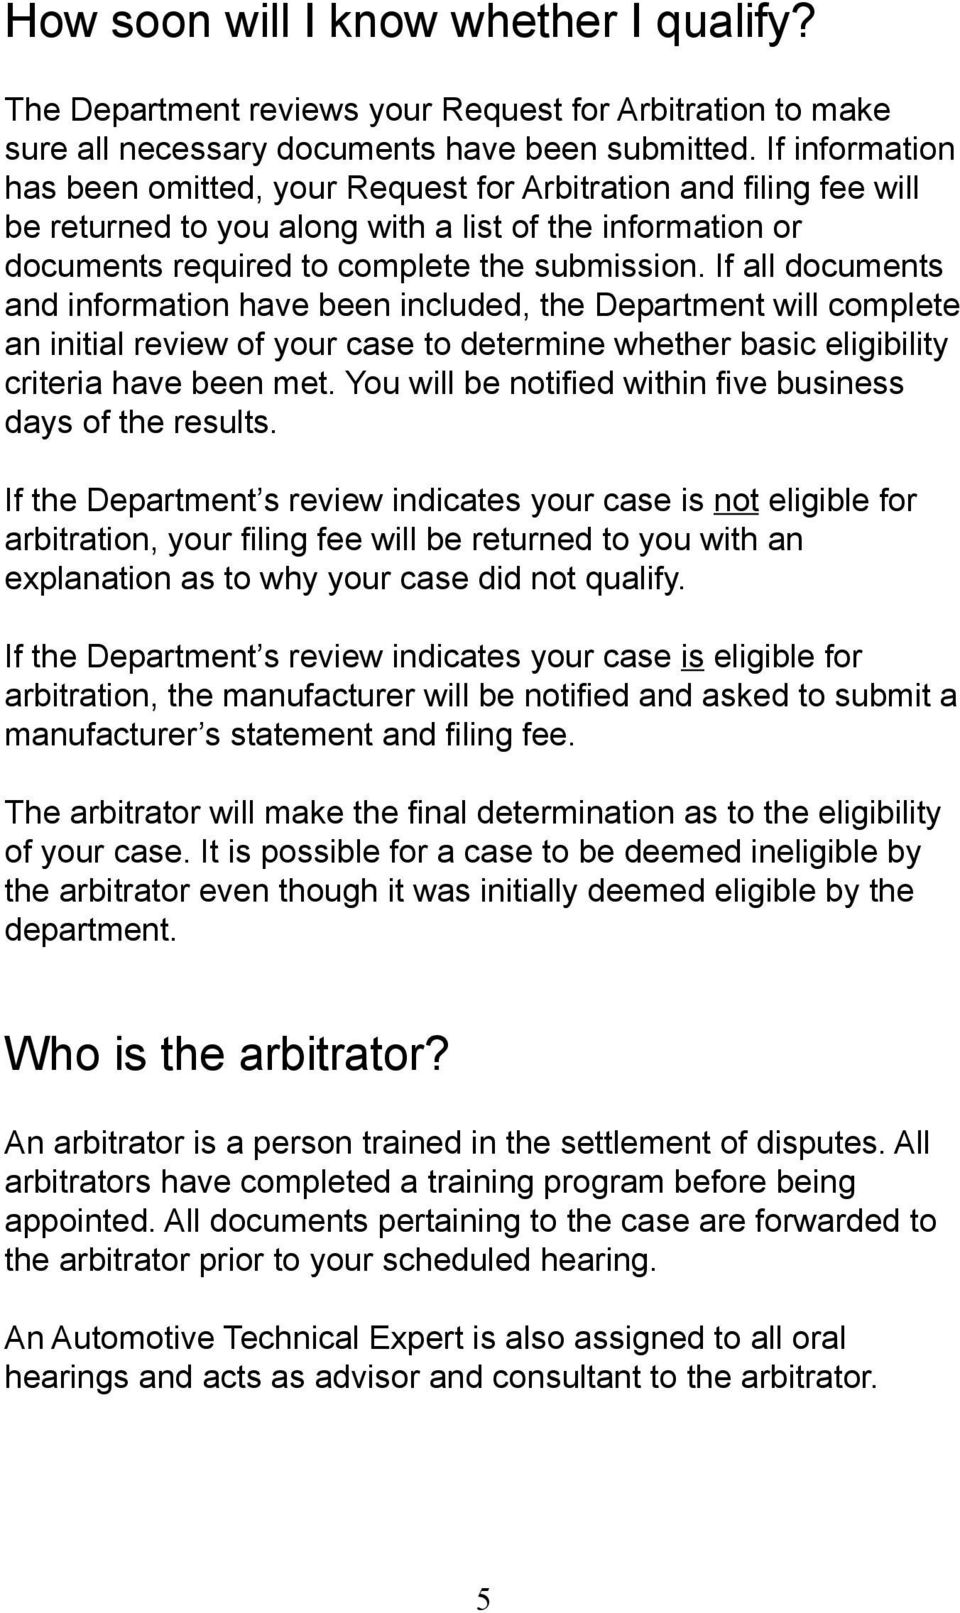 If all documents and information have been included, the Department will complete an initial review of your case to determine whether basic eligibility criteria have been met.